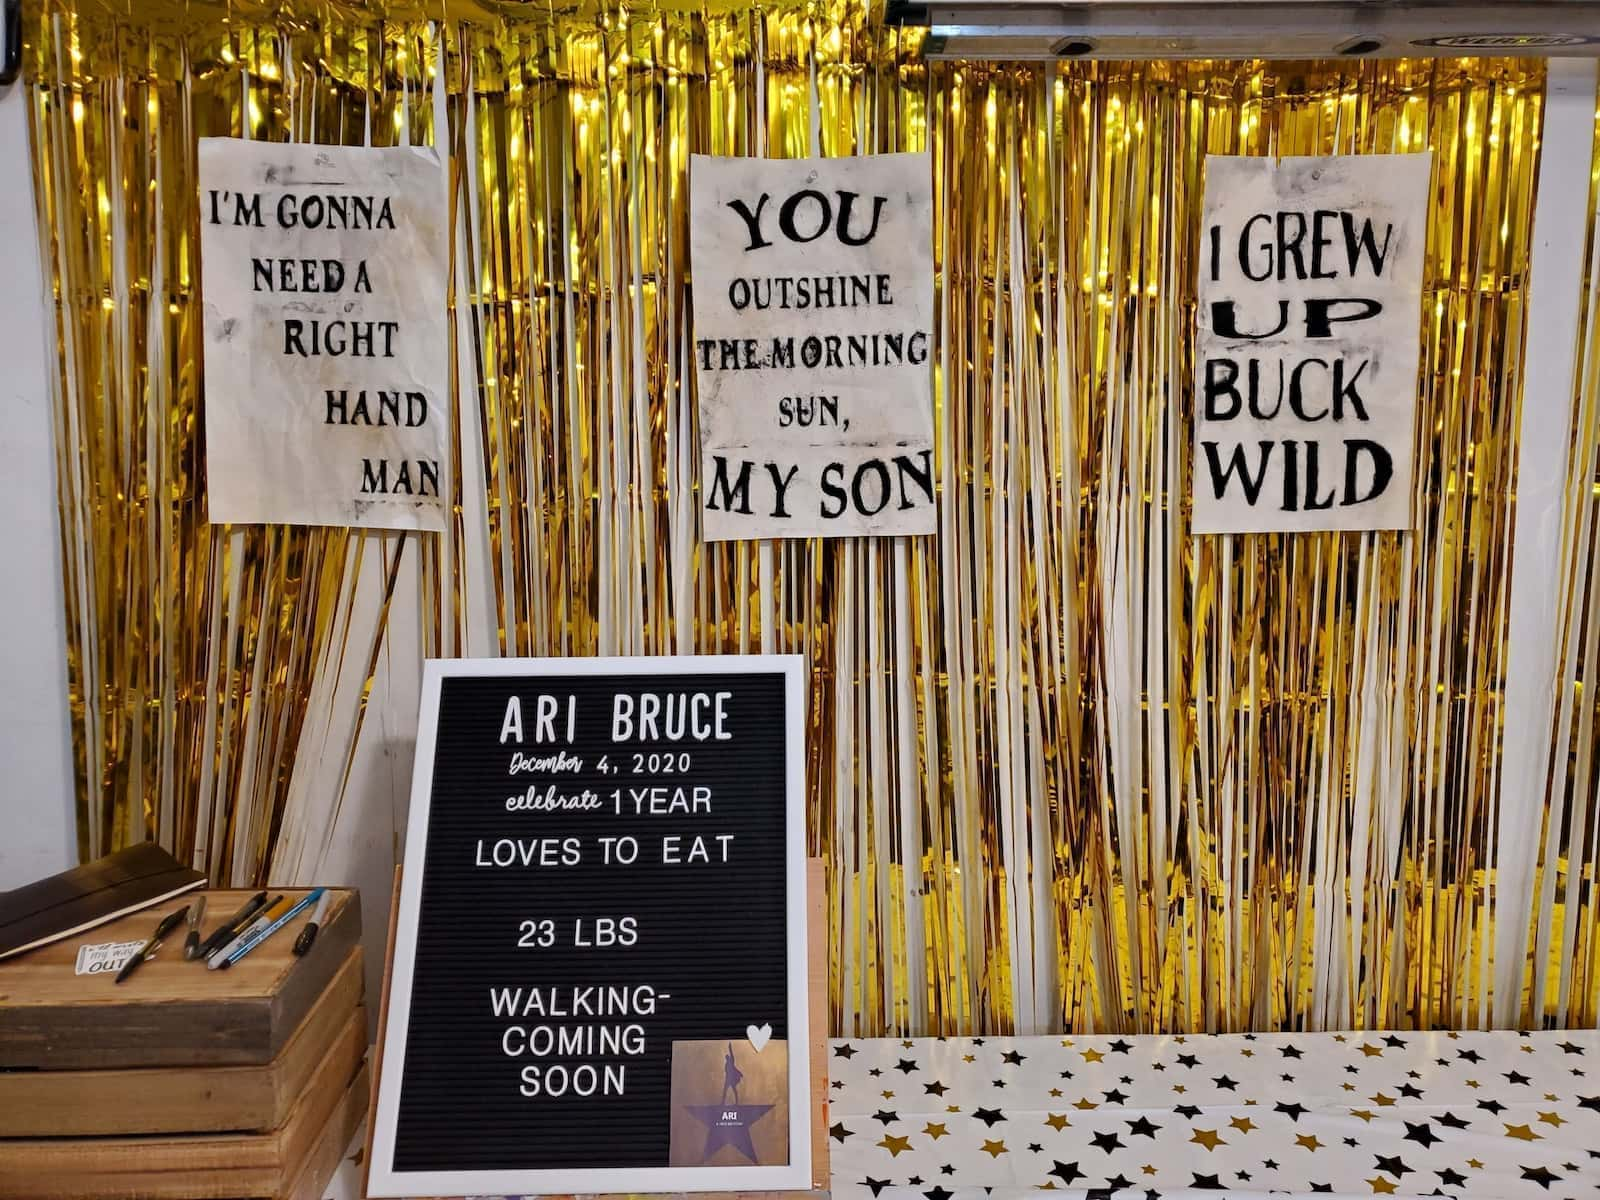 Gold streamers with signs: I'M GONNA NEED A RIGHT HAND MAN, YOU OUTSHINE THE MORNING SUN, MY SON, I GREW UP BUCK WILD